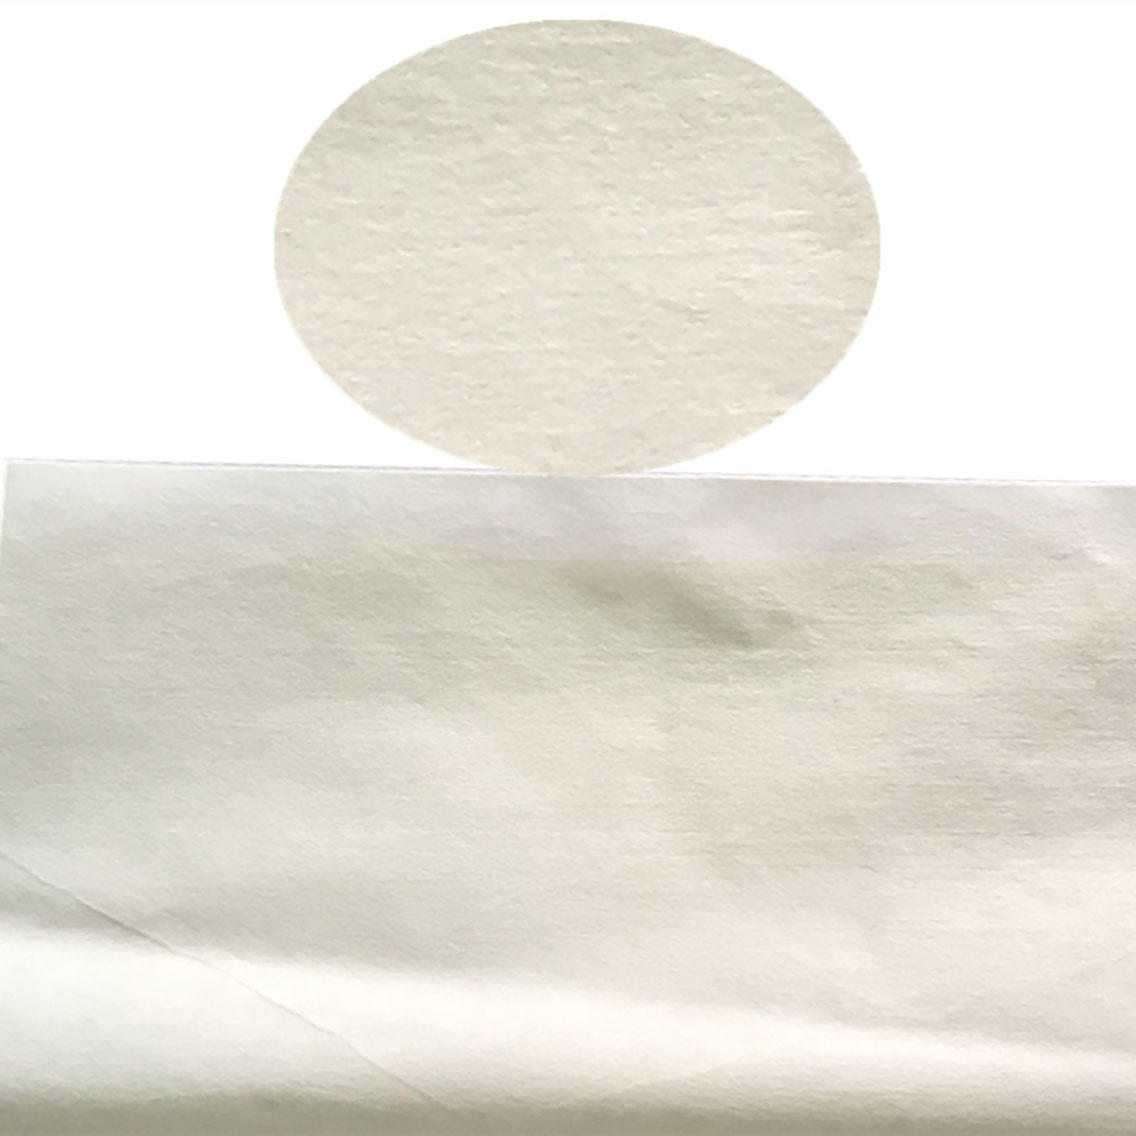 smooth industrial wipes strong absorbency supplier for lab-2